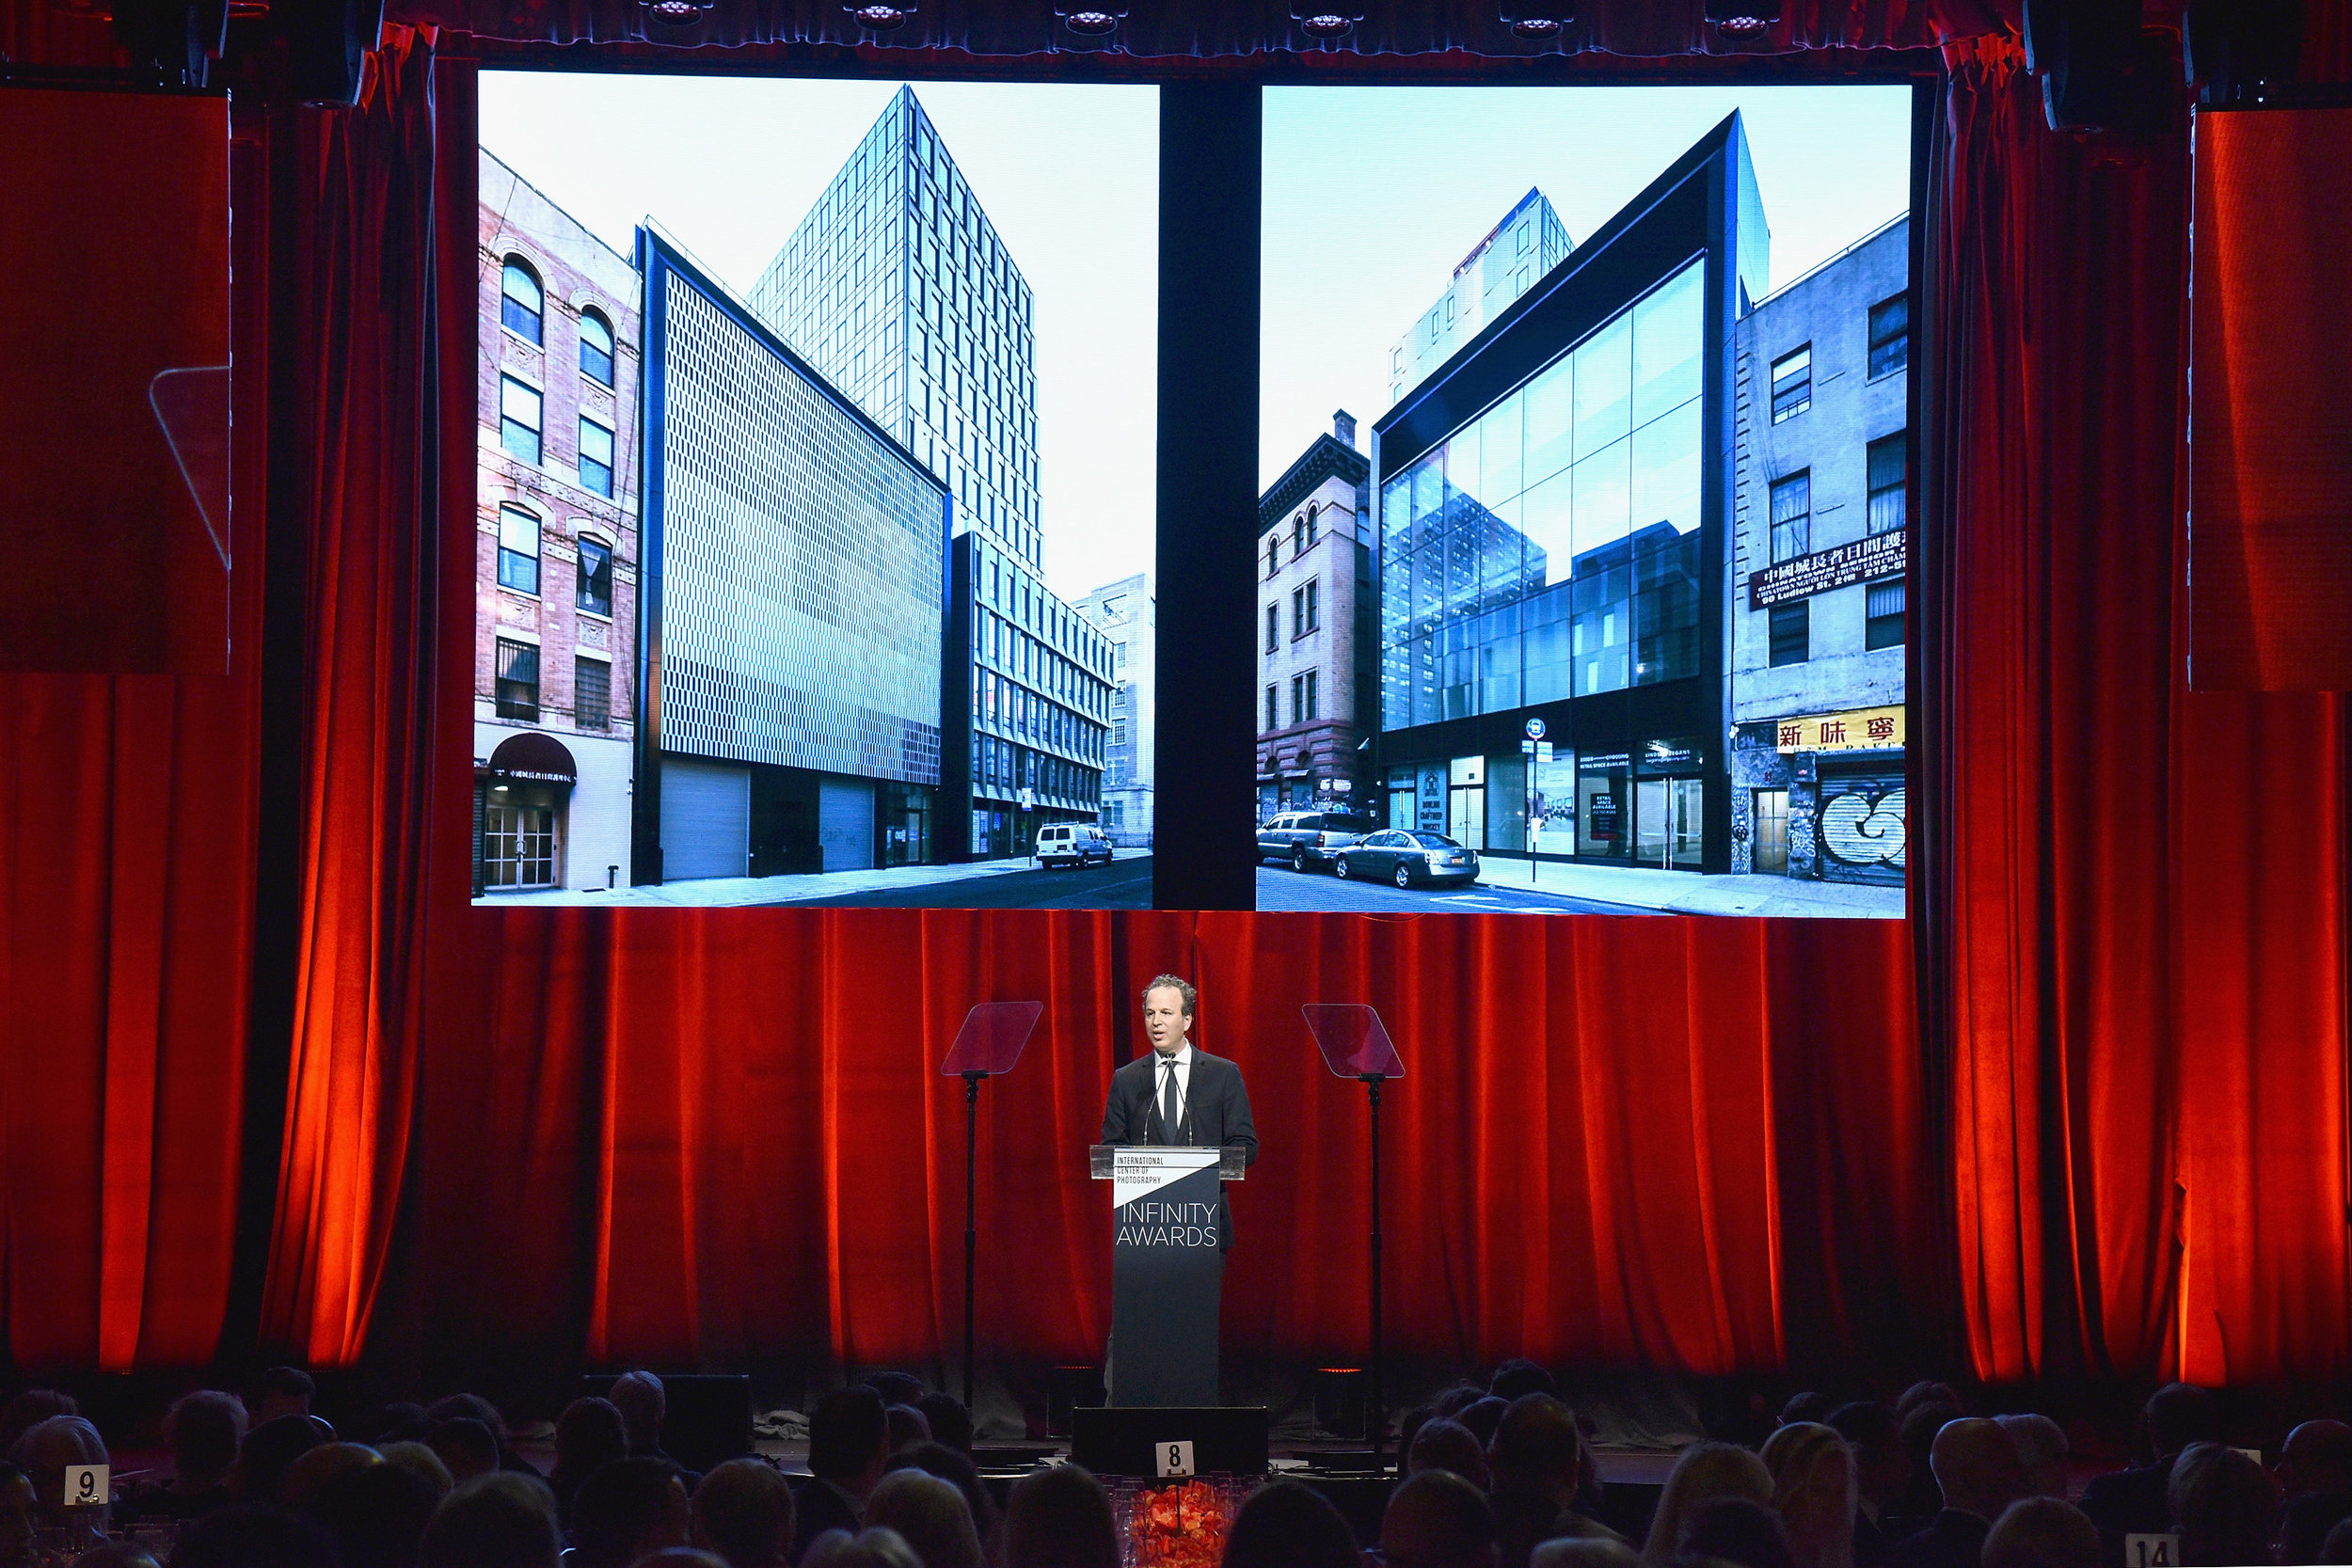 NEW YORK, NY - APRIL 02: ICP Executive Director Mark Lubell speaks onstage during The International Center Of Photography's 35th Annual Infinity Awards at The Ziegfeld Ballroom on April 2, 2019 in New York City. (Photo by Bryan Bedder/Getty Images for International Center of Photography)